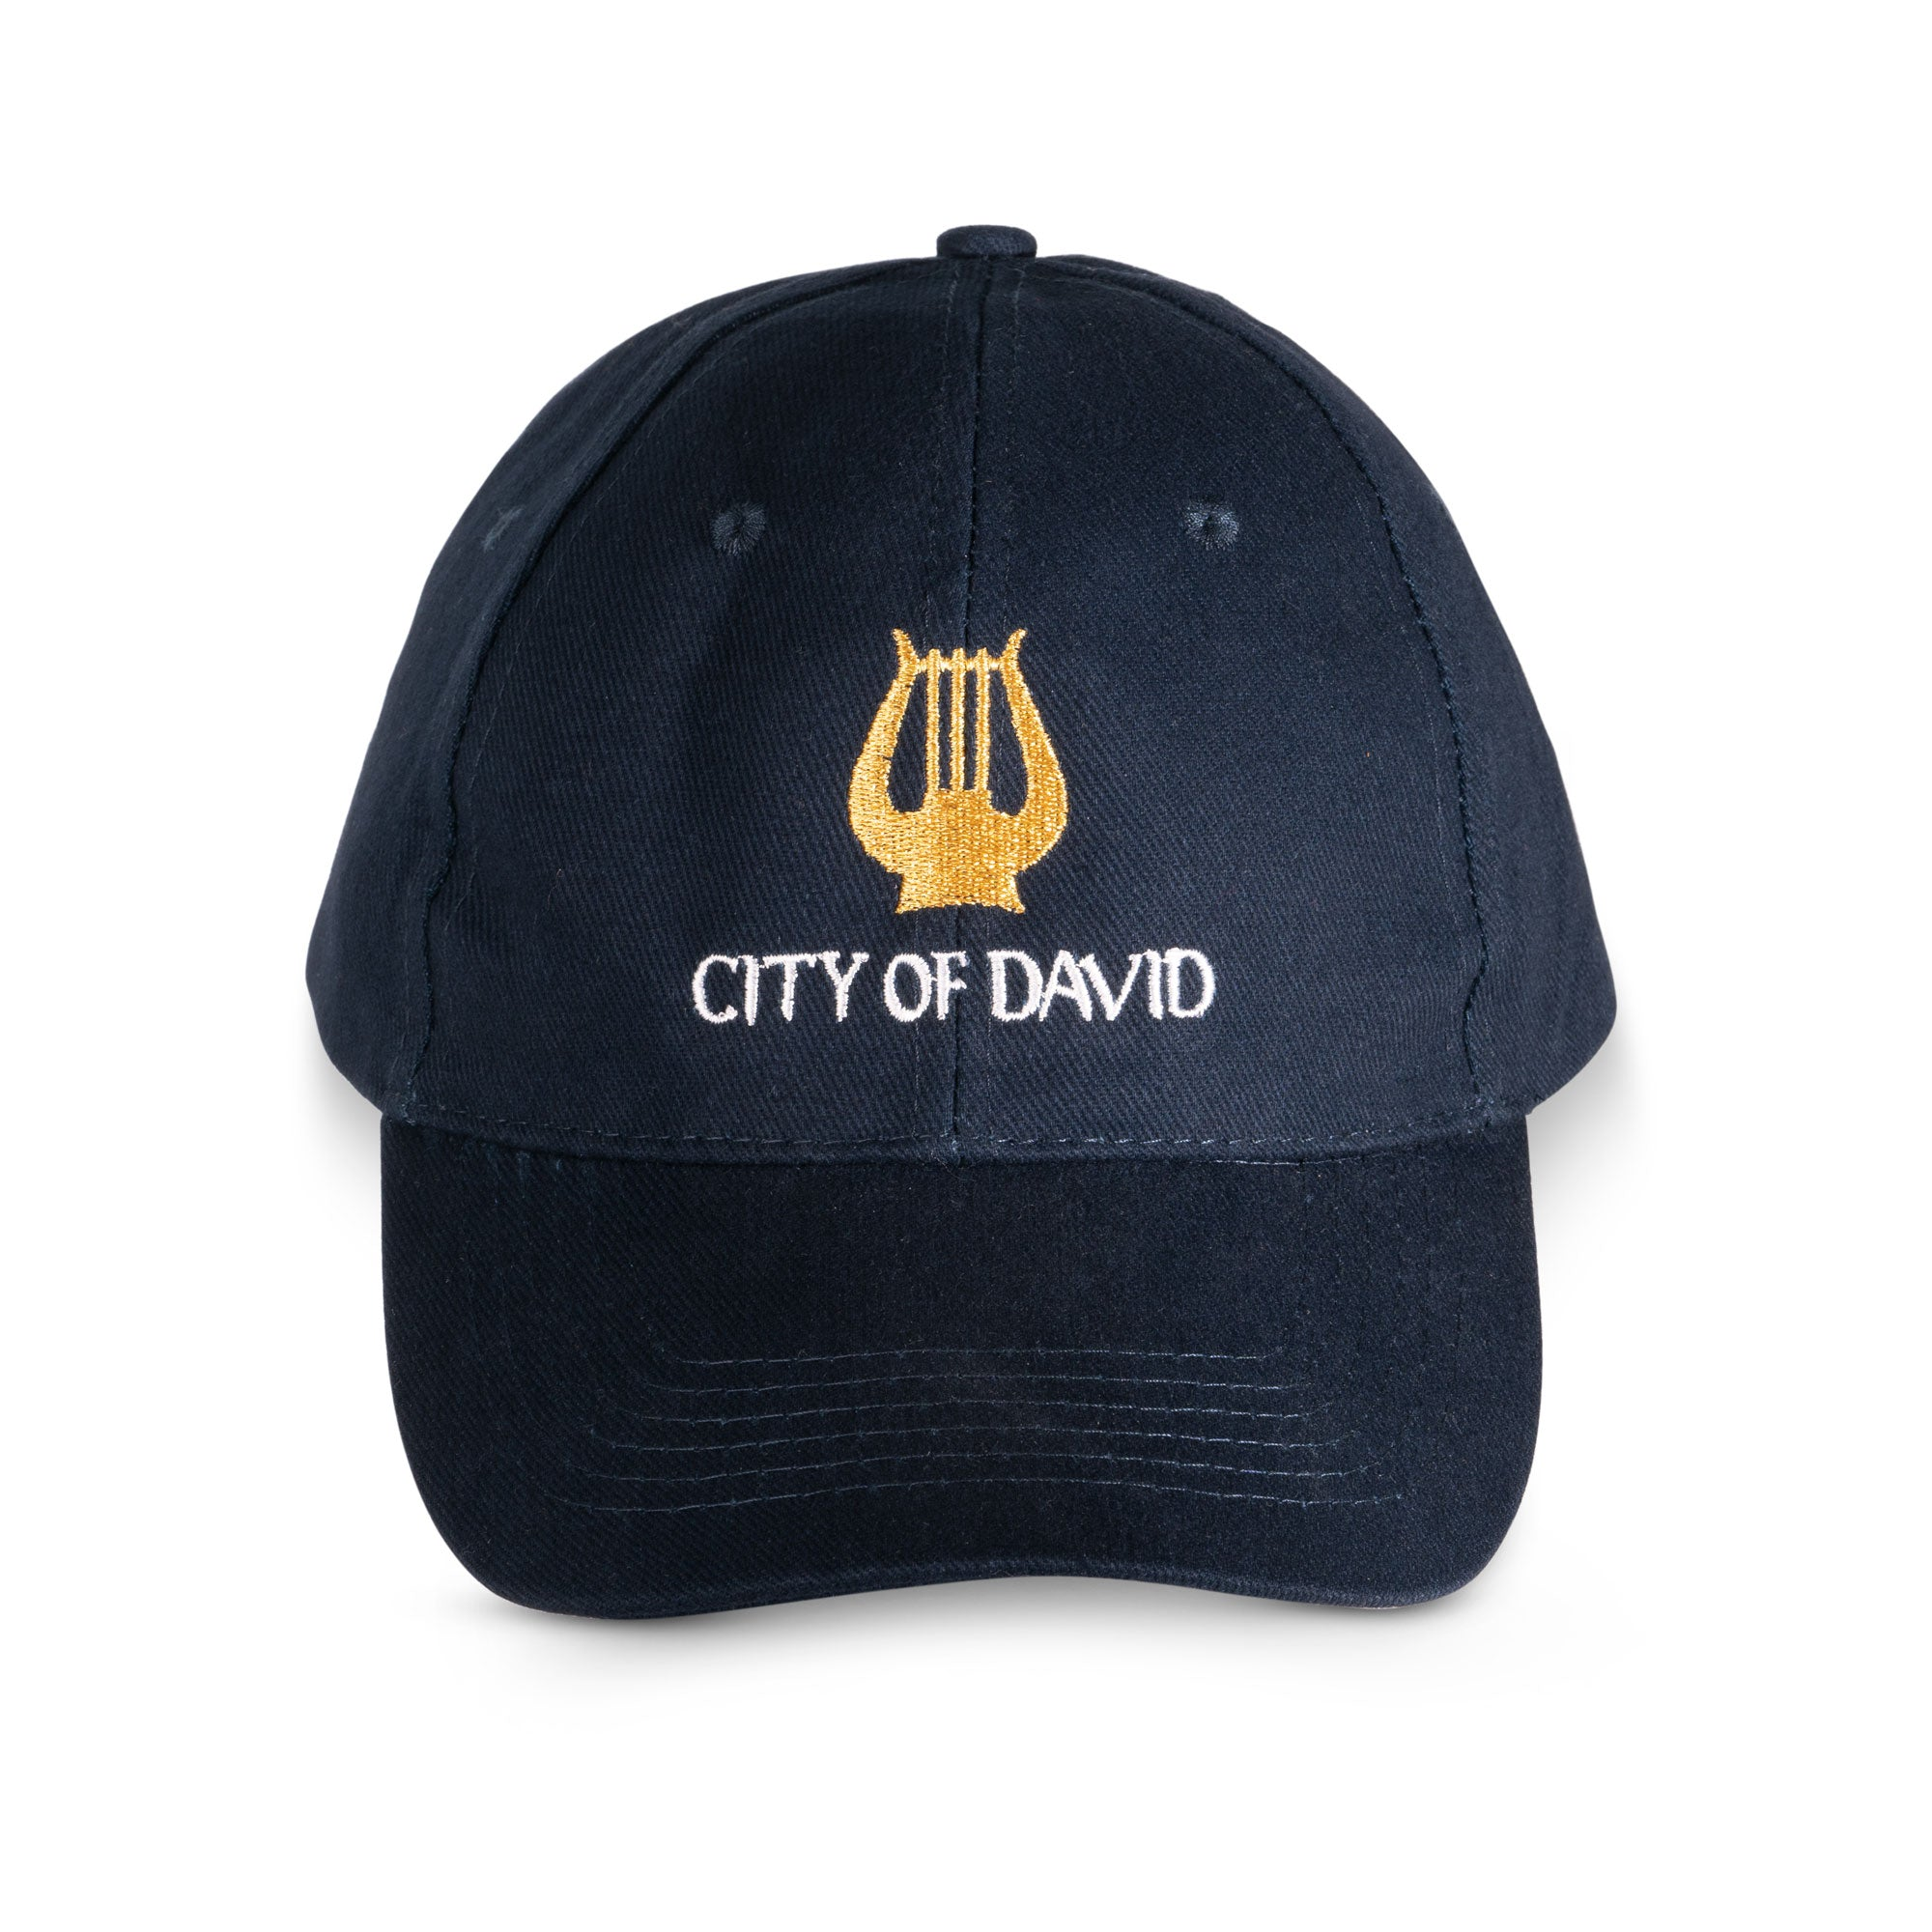 City of David black baseball cap